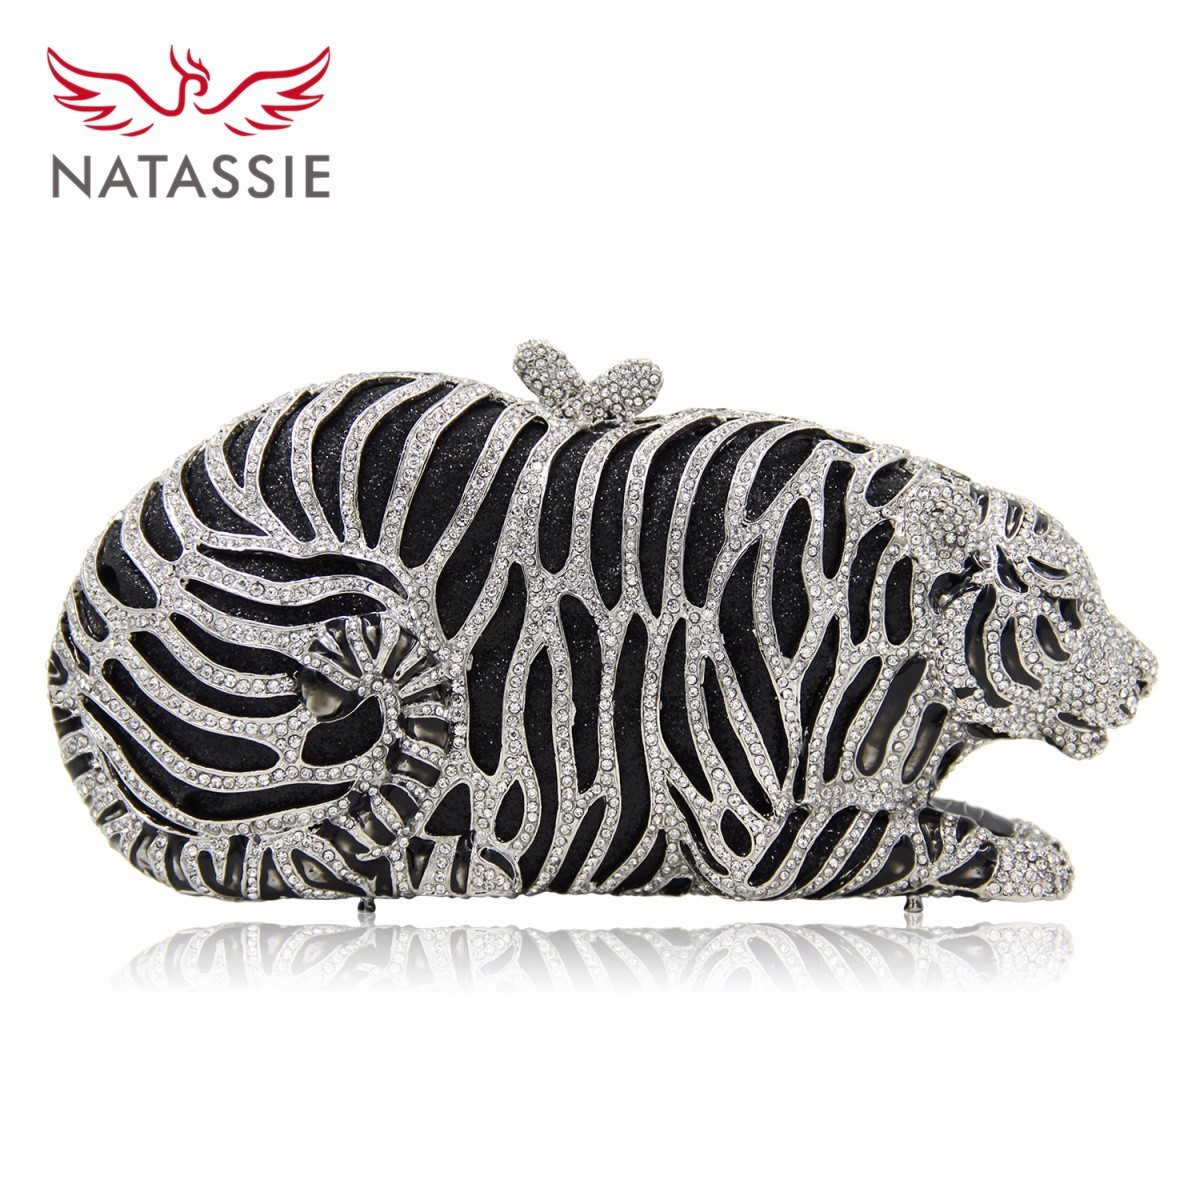 NATASSIE Women Luxury Crystal Evening  Clutch Bag Tiger Shape Clutch Purse Party Gold Bags luxury crystal clutch handbag women evening bag wedding party purses banquet